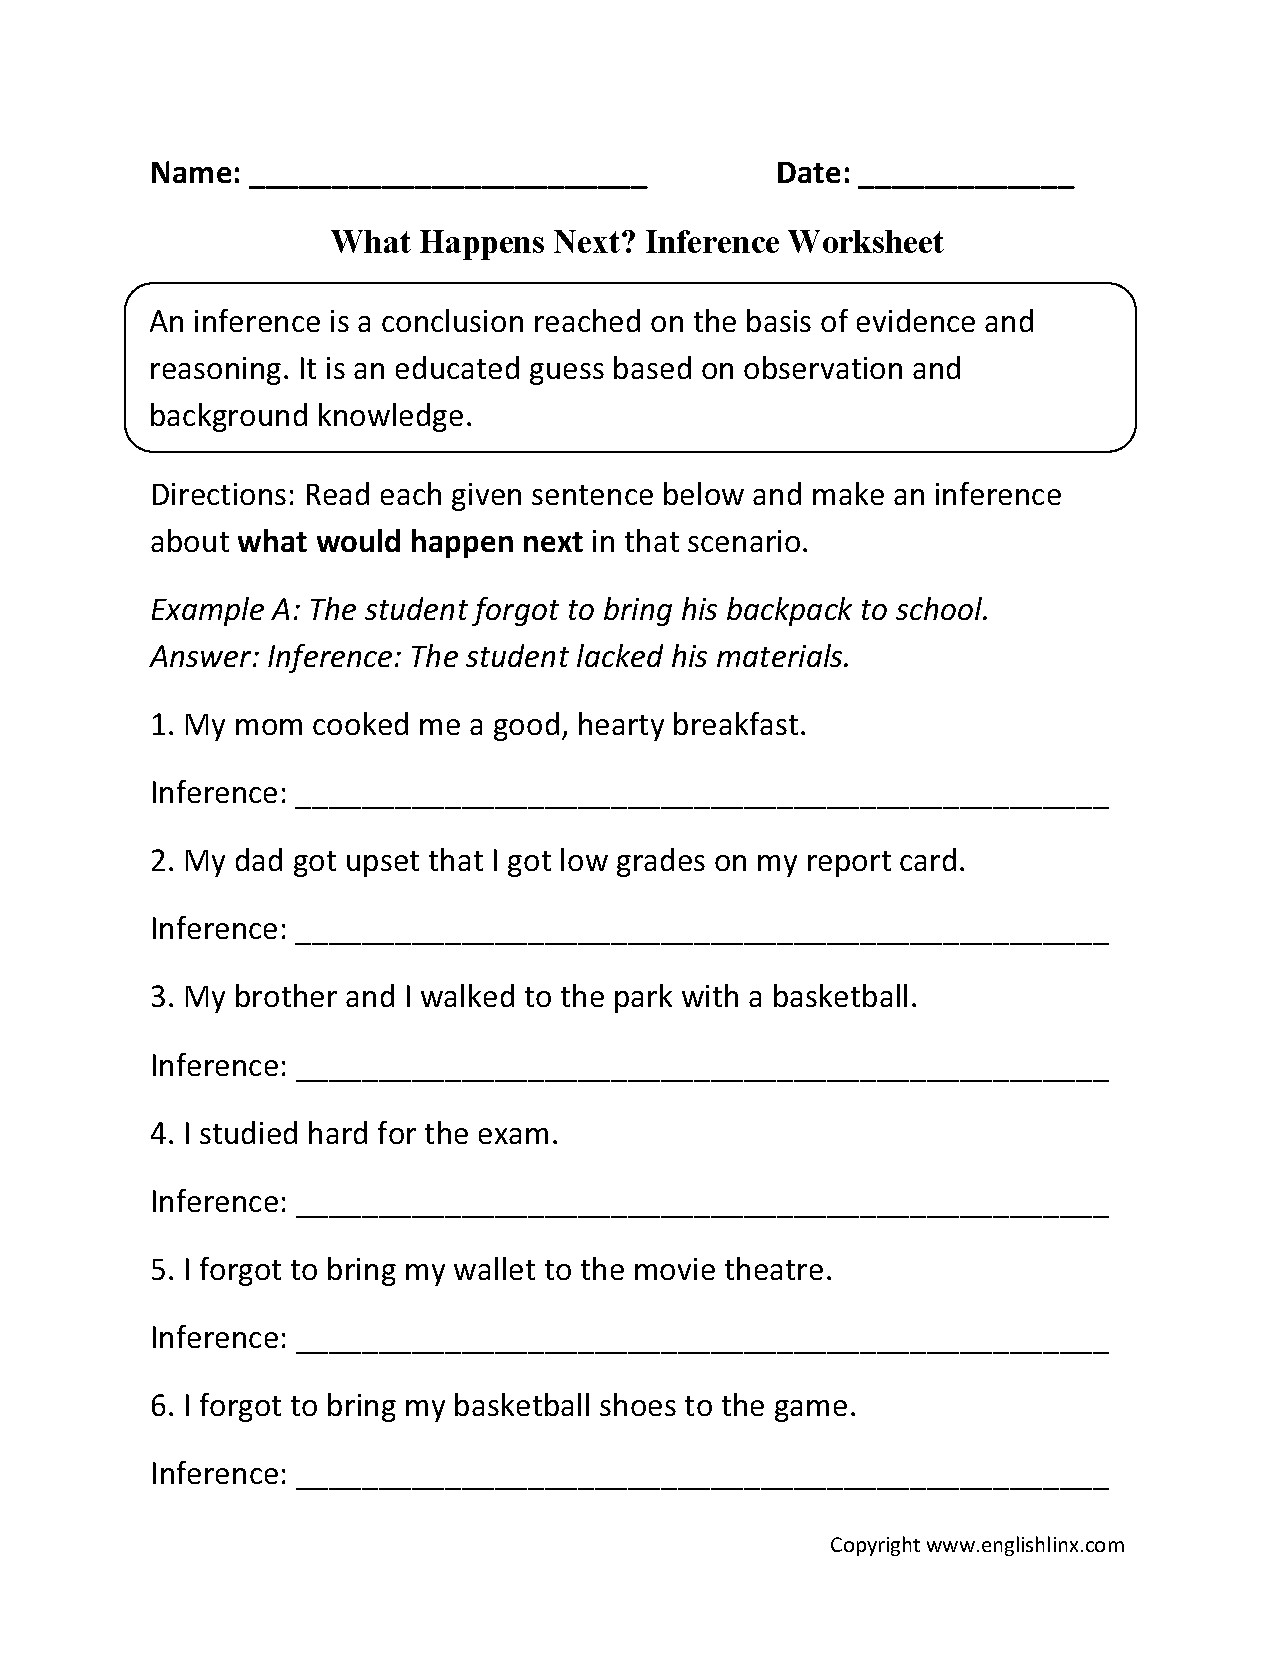 Inferencing Worksheets 4th Grade Making Inferences Worksheets Grade 3